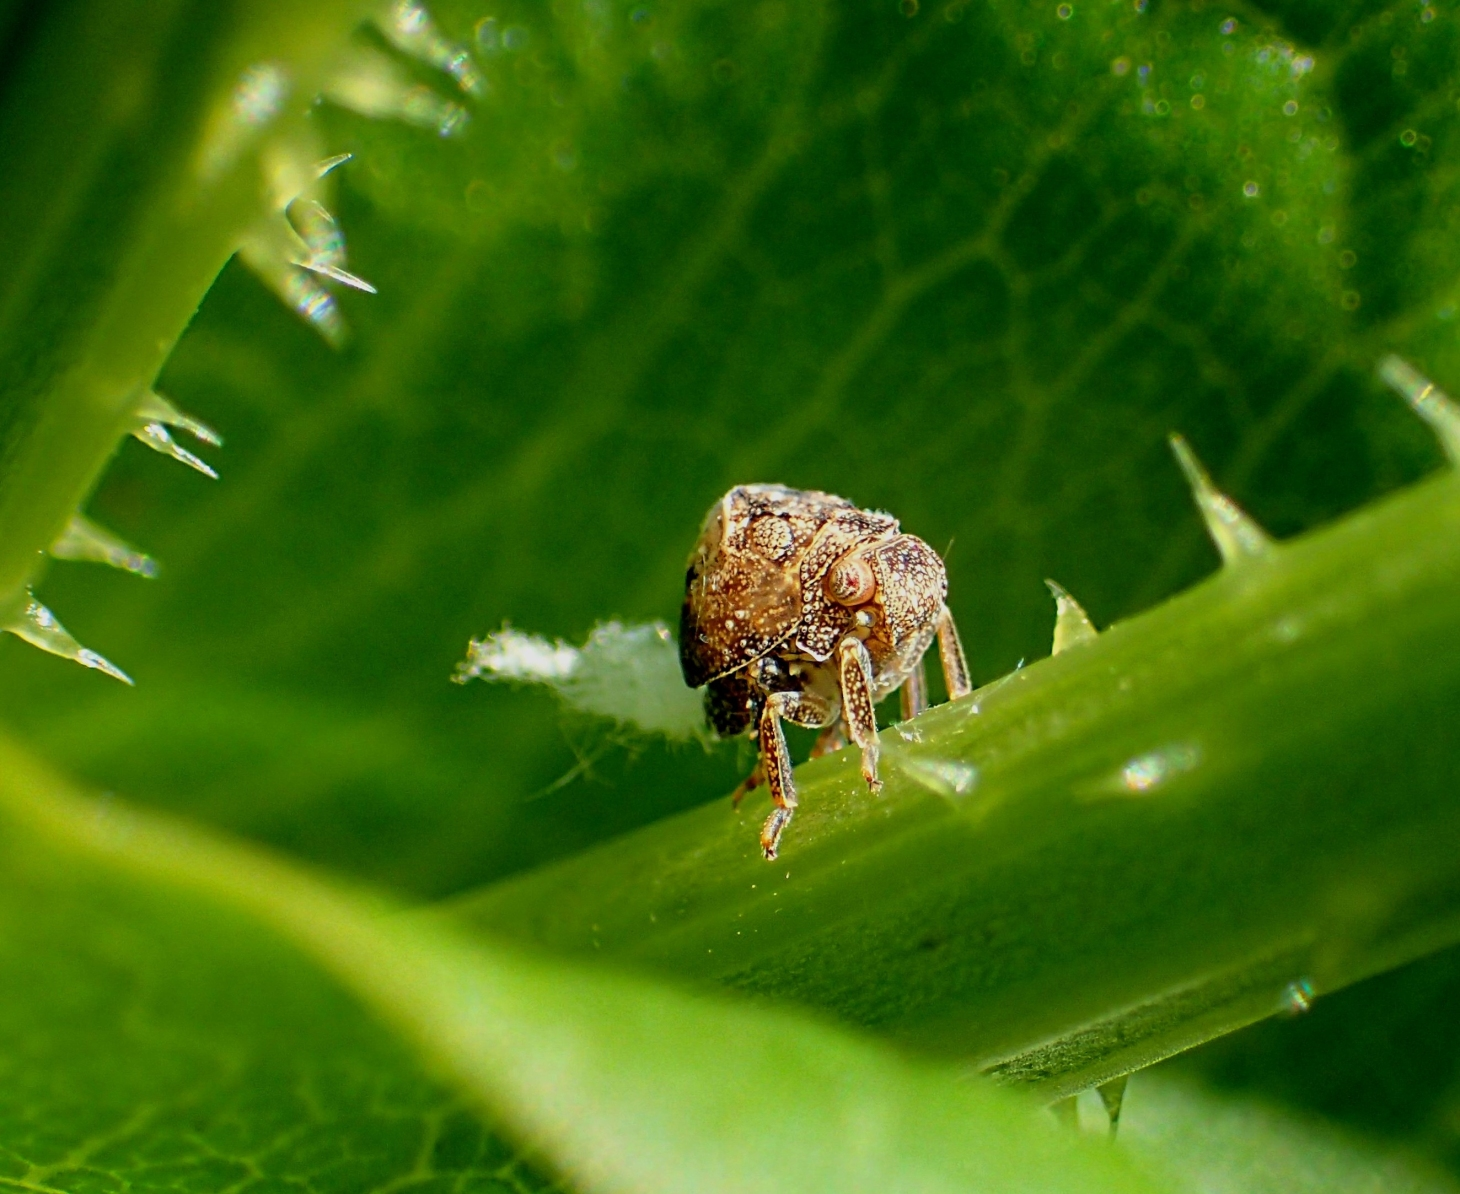 Leafhopper Nymph (only around 3/16 of an inch long) with fluffy bum (which is an excess of sugar), while acting elusive on a Thistle Plant stem.  Photo by Thomas Peace 2014